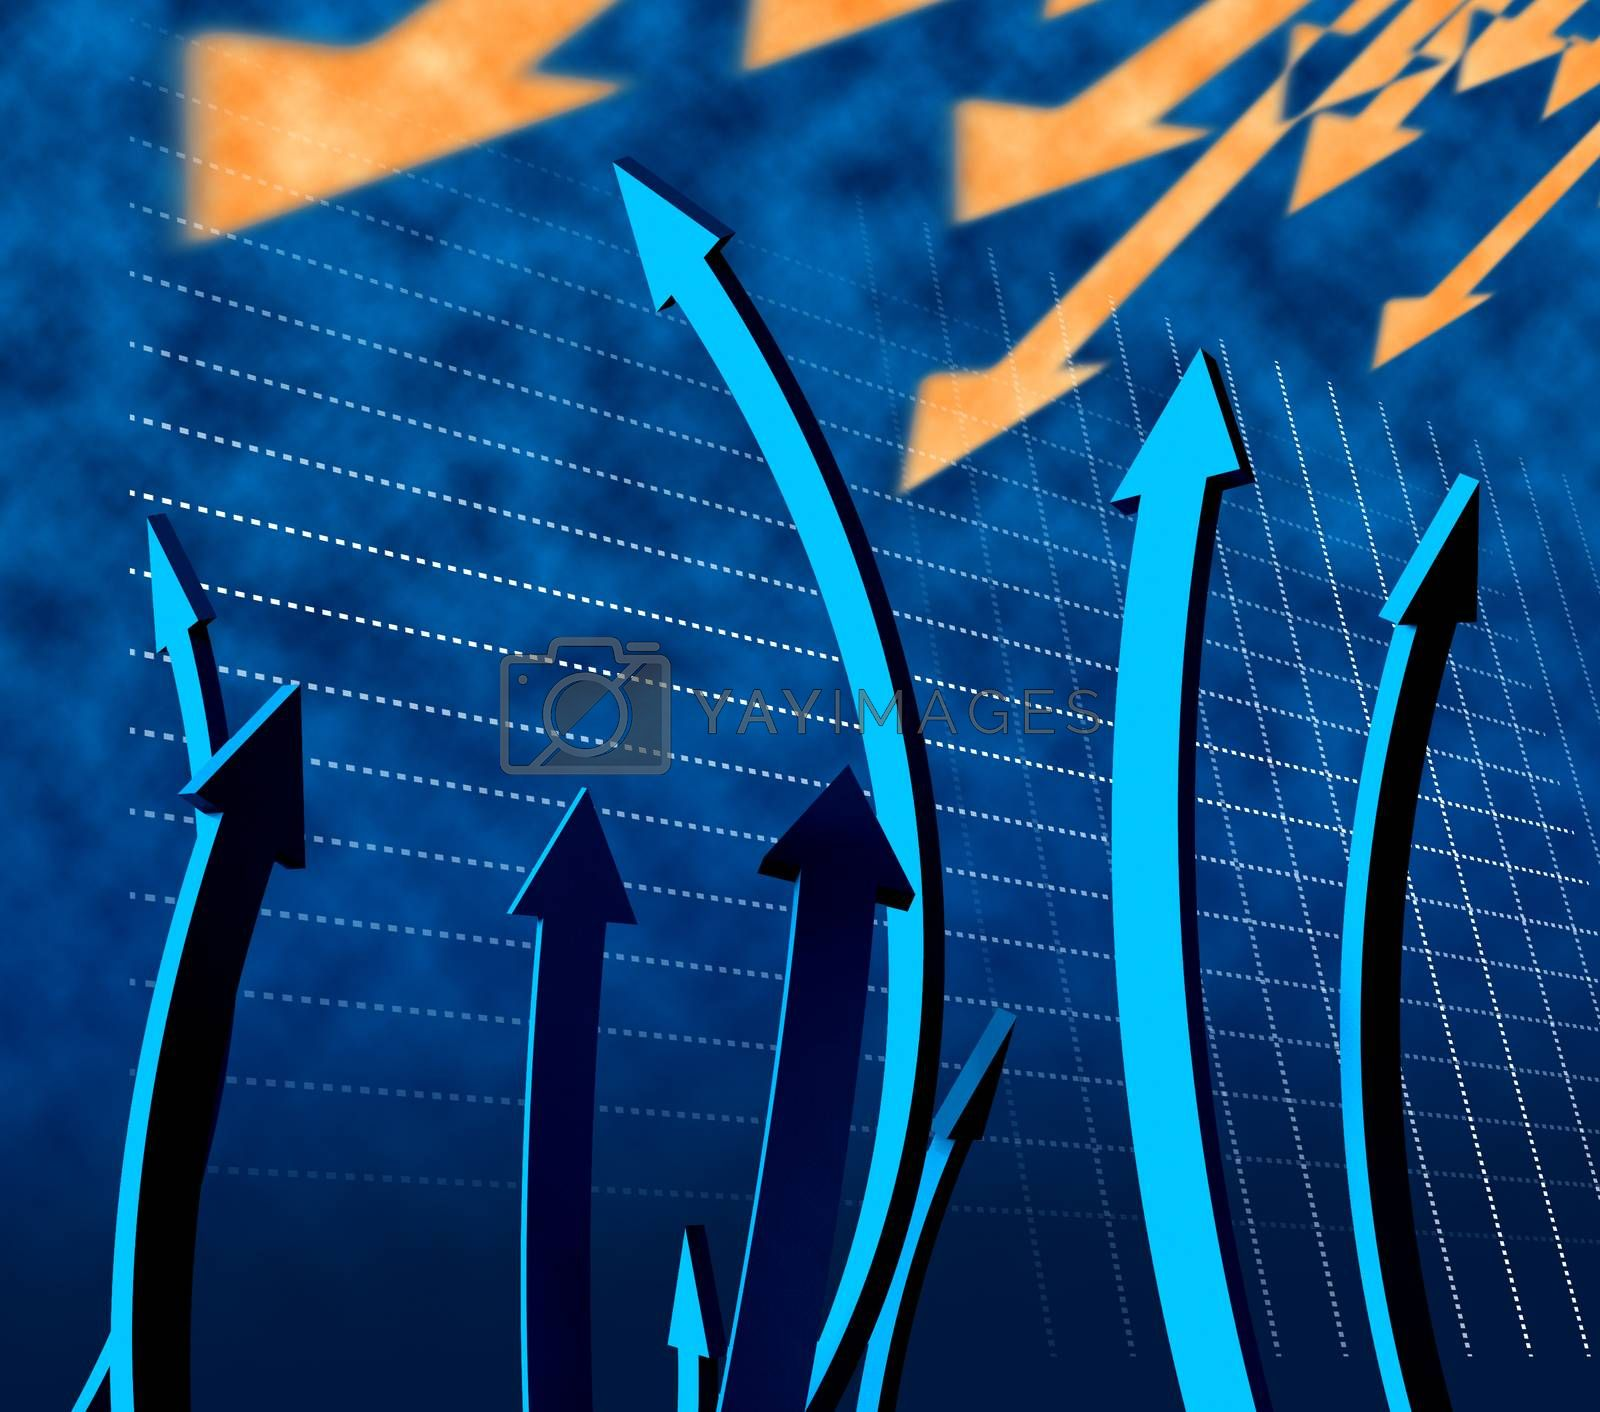 Arrows Going Up Shows Increase Rising And Advance by stuartmiles